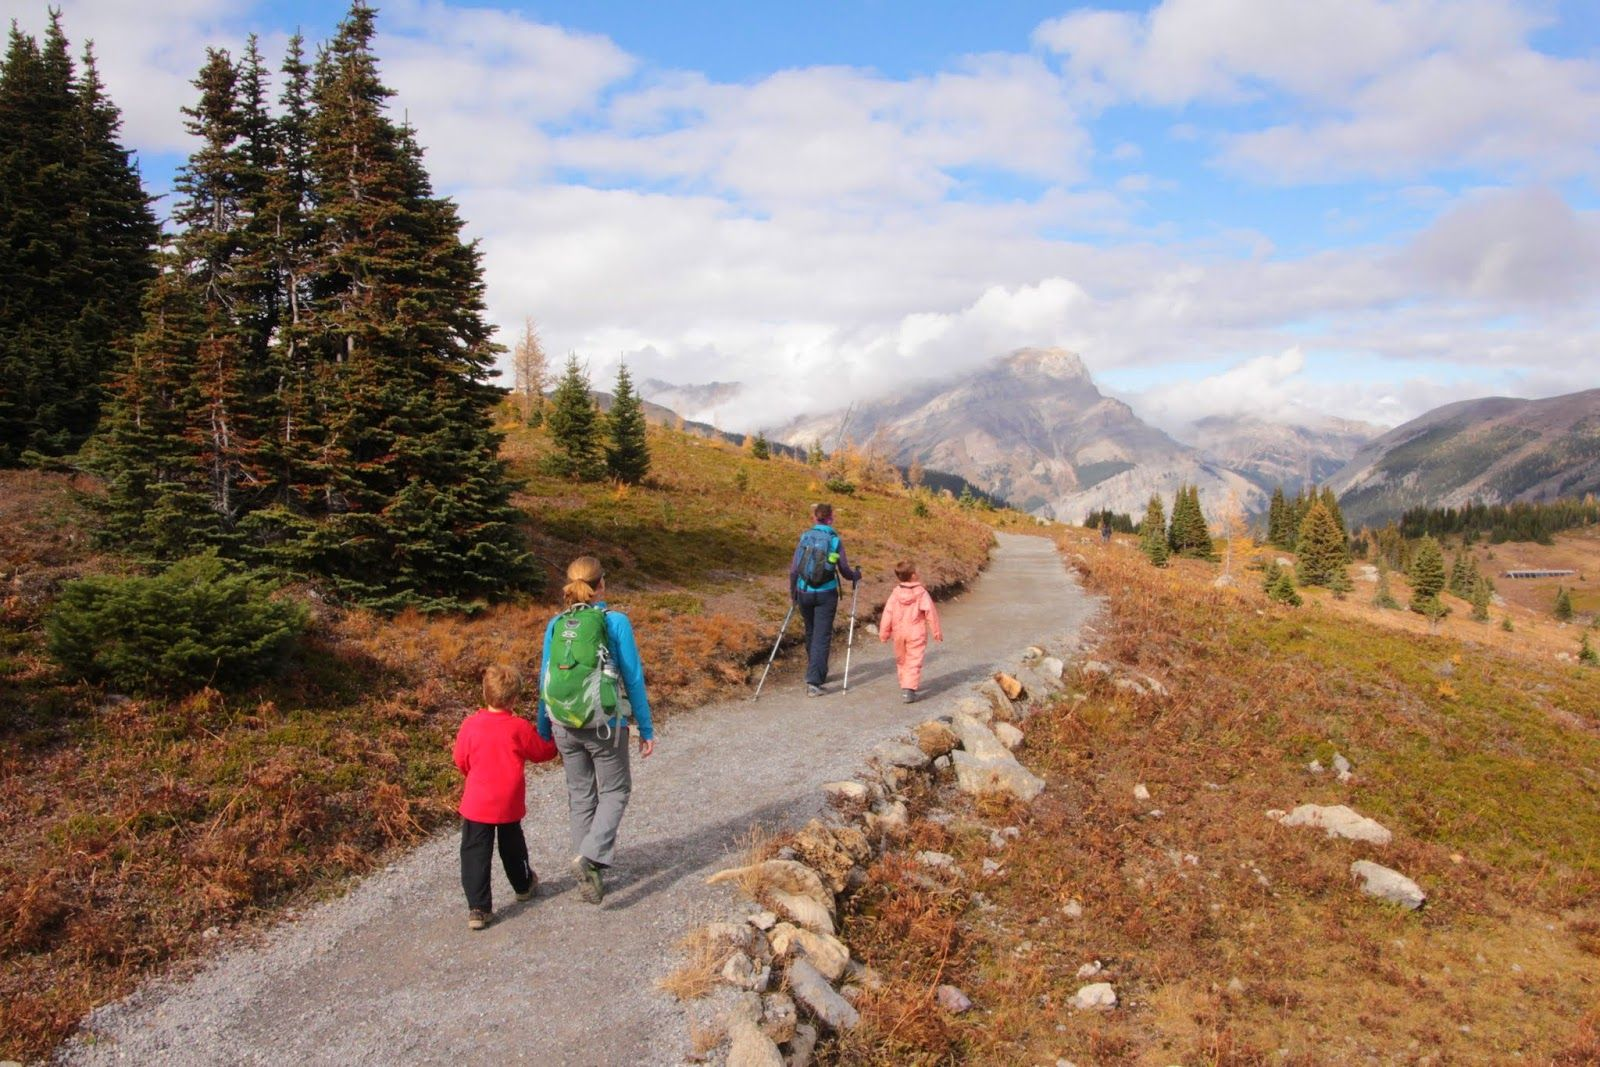 Autumn Hiking at Sunshine Meadows One of Canada's Top